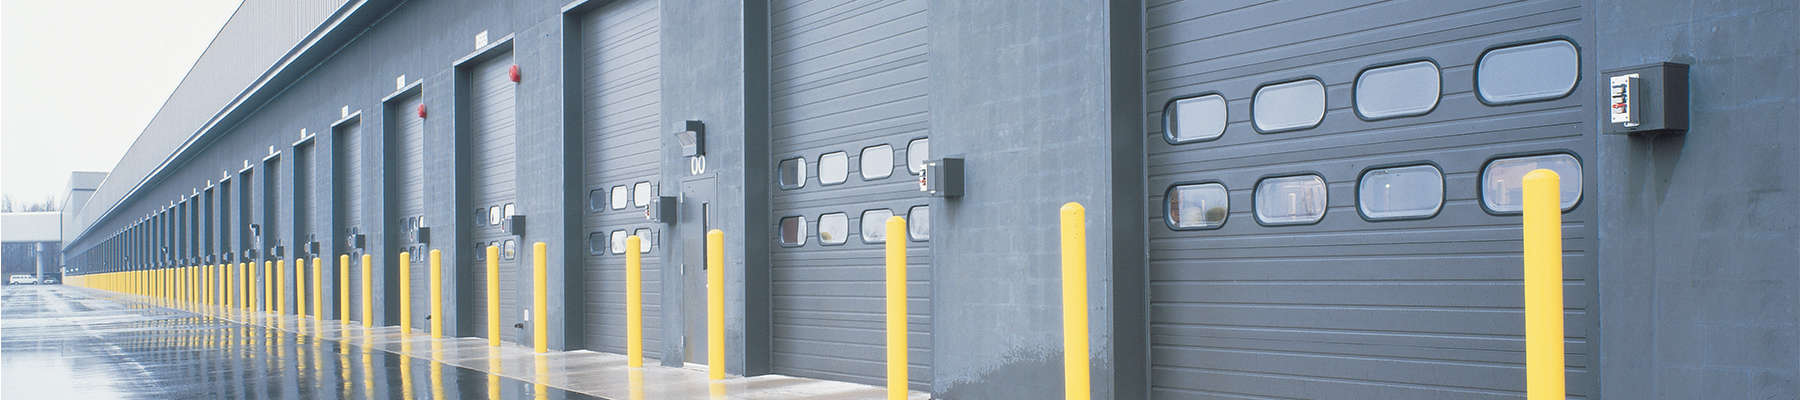 industrial facility with overhead doors